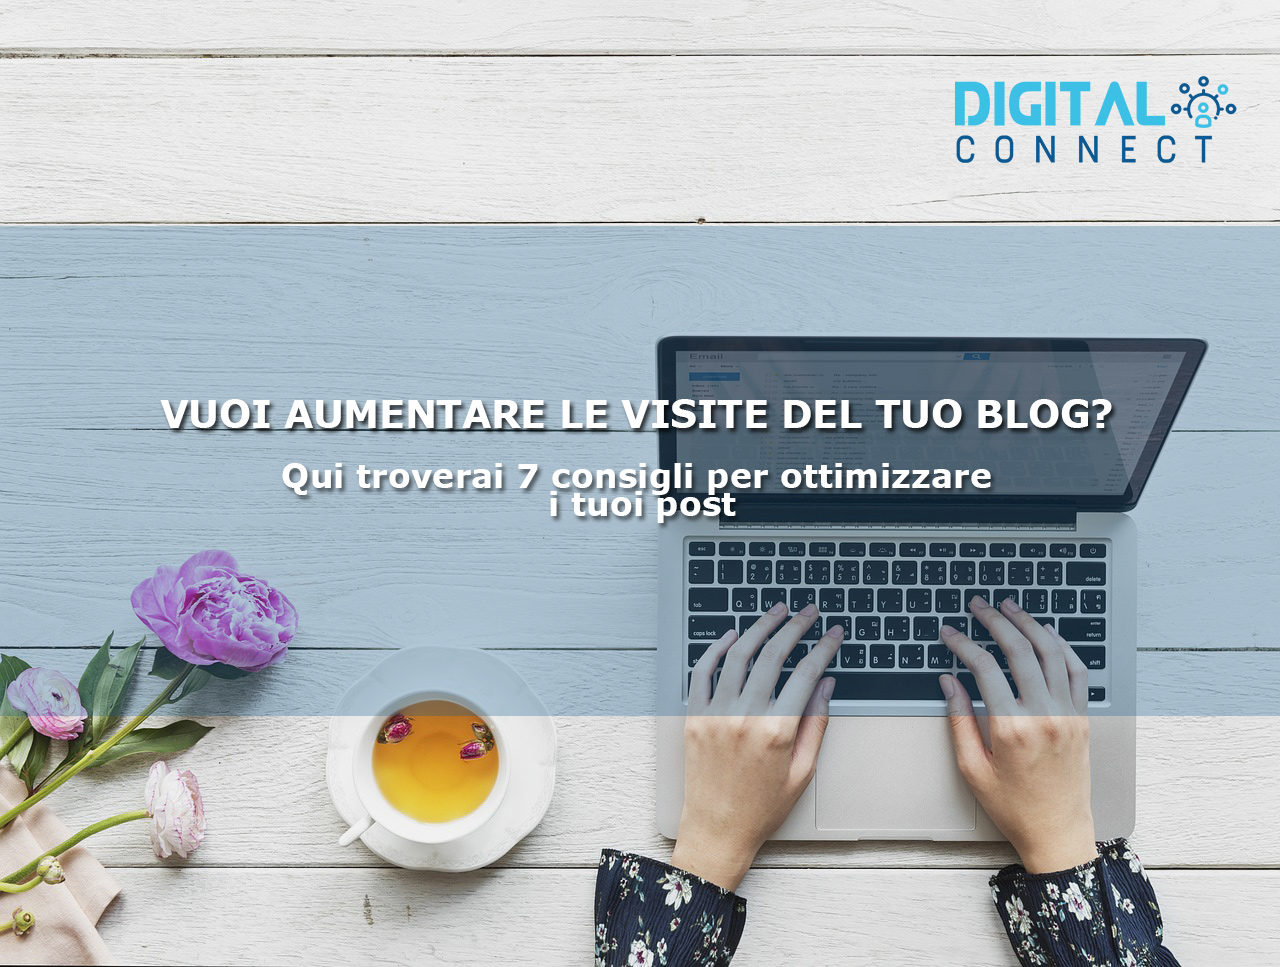 Come aumentare le visite del tuo blog - Digital Connect